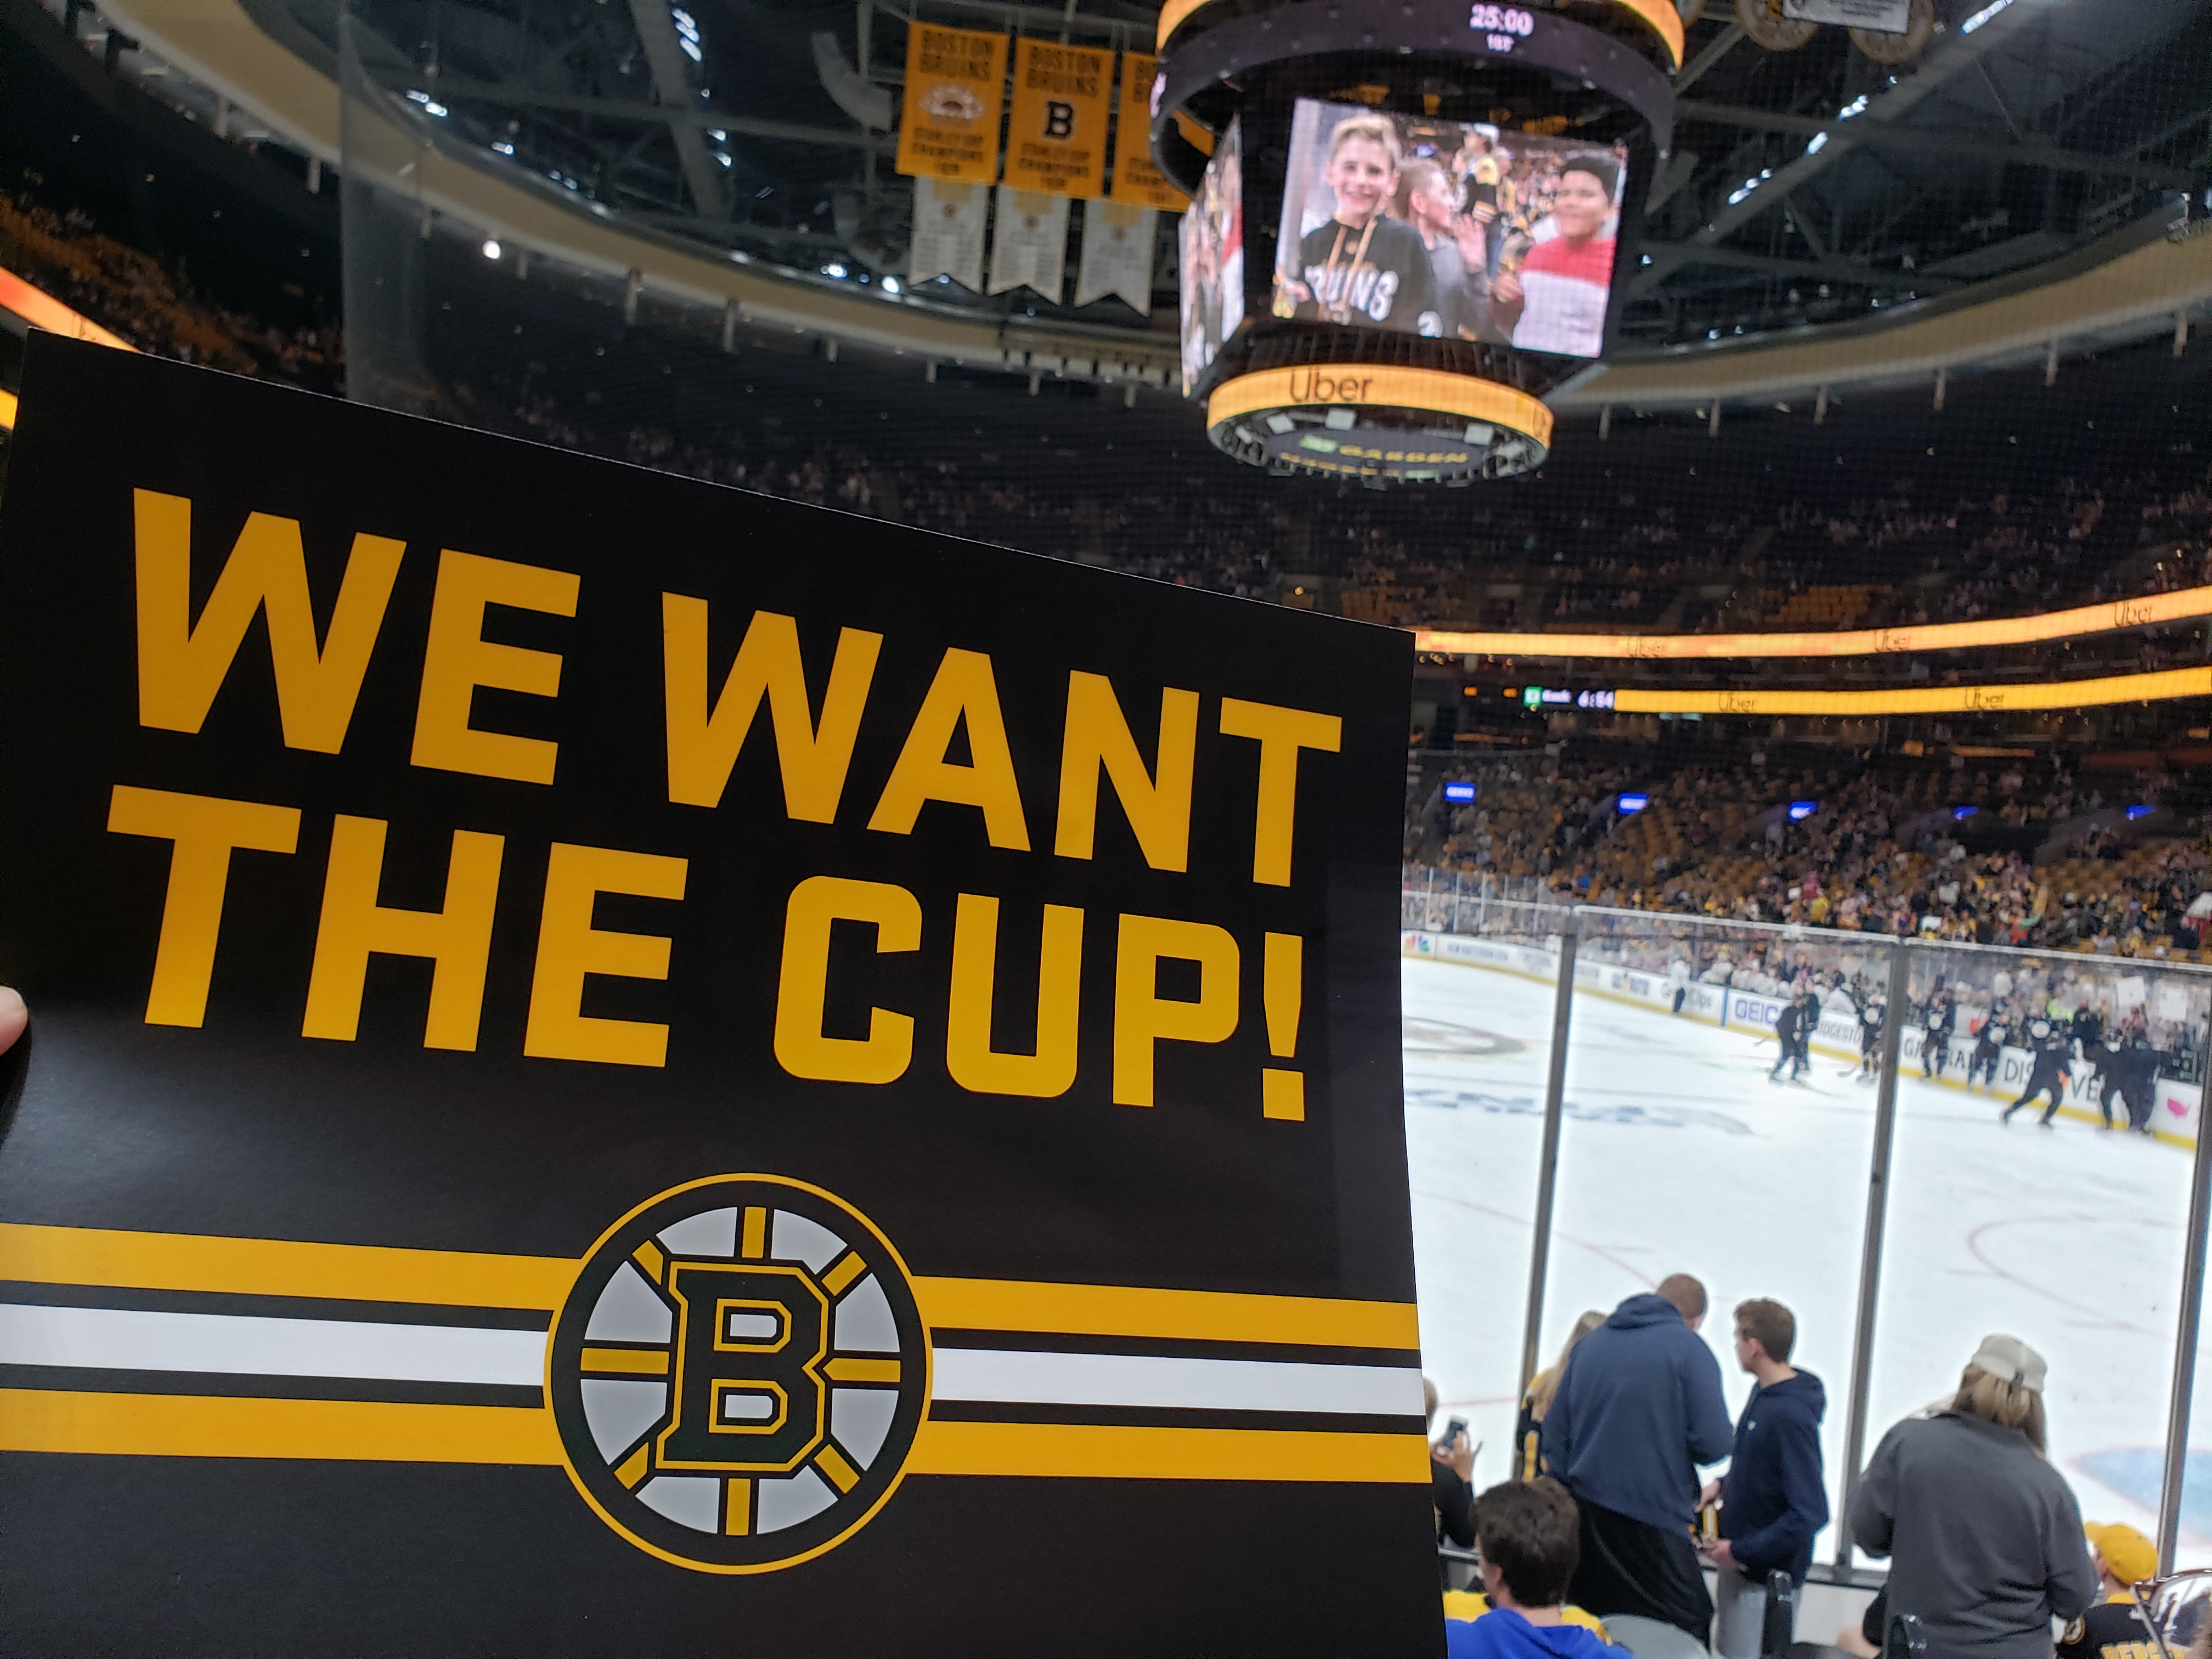 We Want The Cup